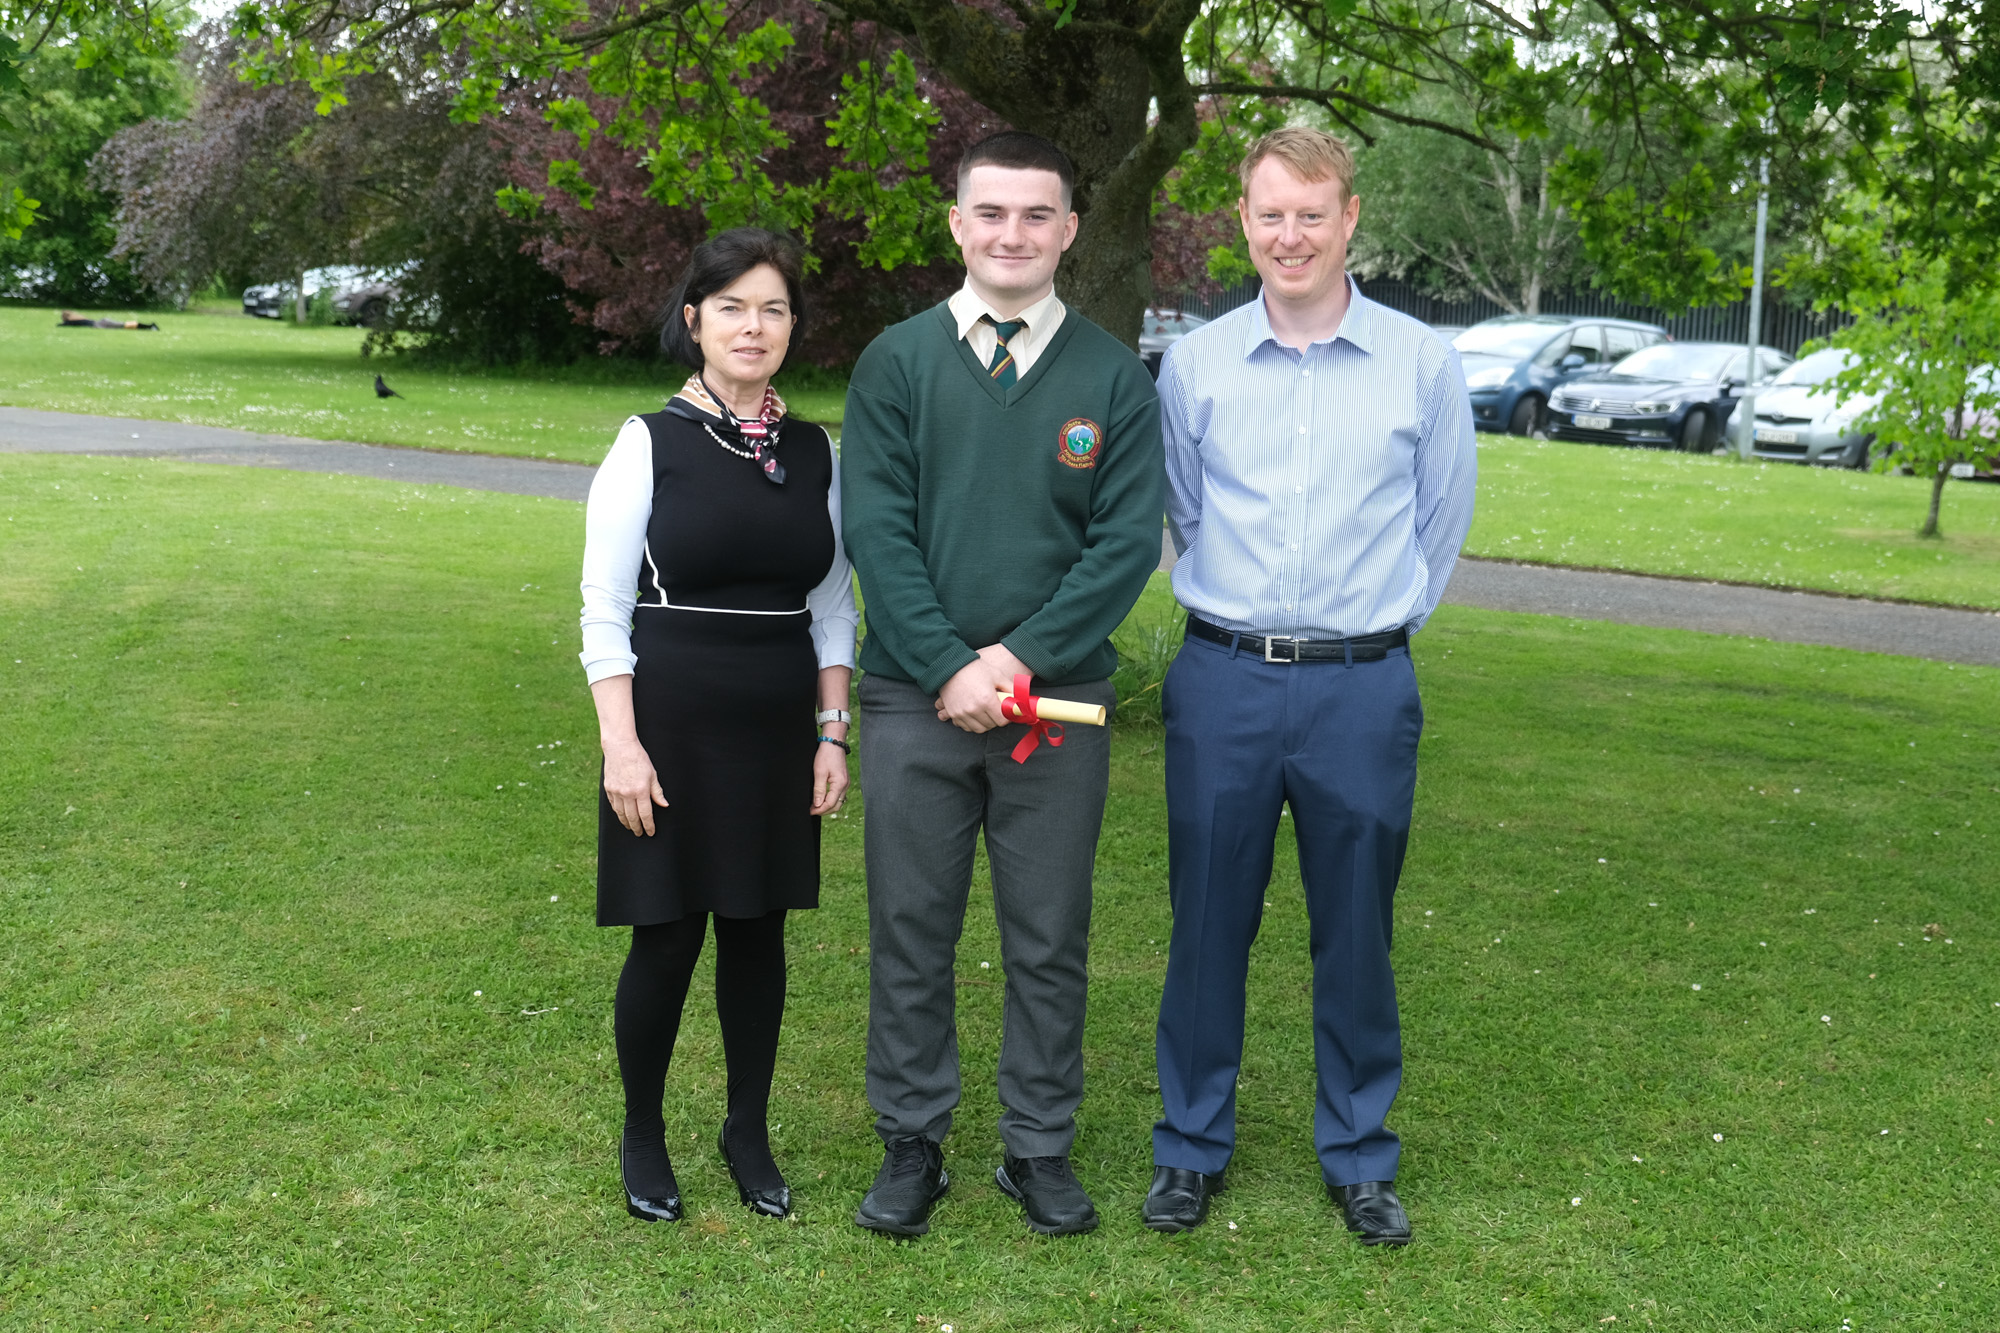 Spirit Of Colaiste Chiarain  Betty O'Hare, Glen Morahan, Mark Kennedy